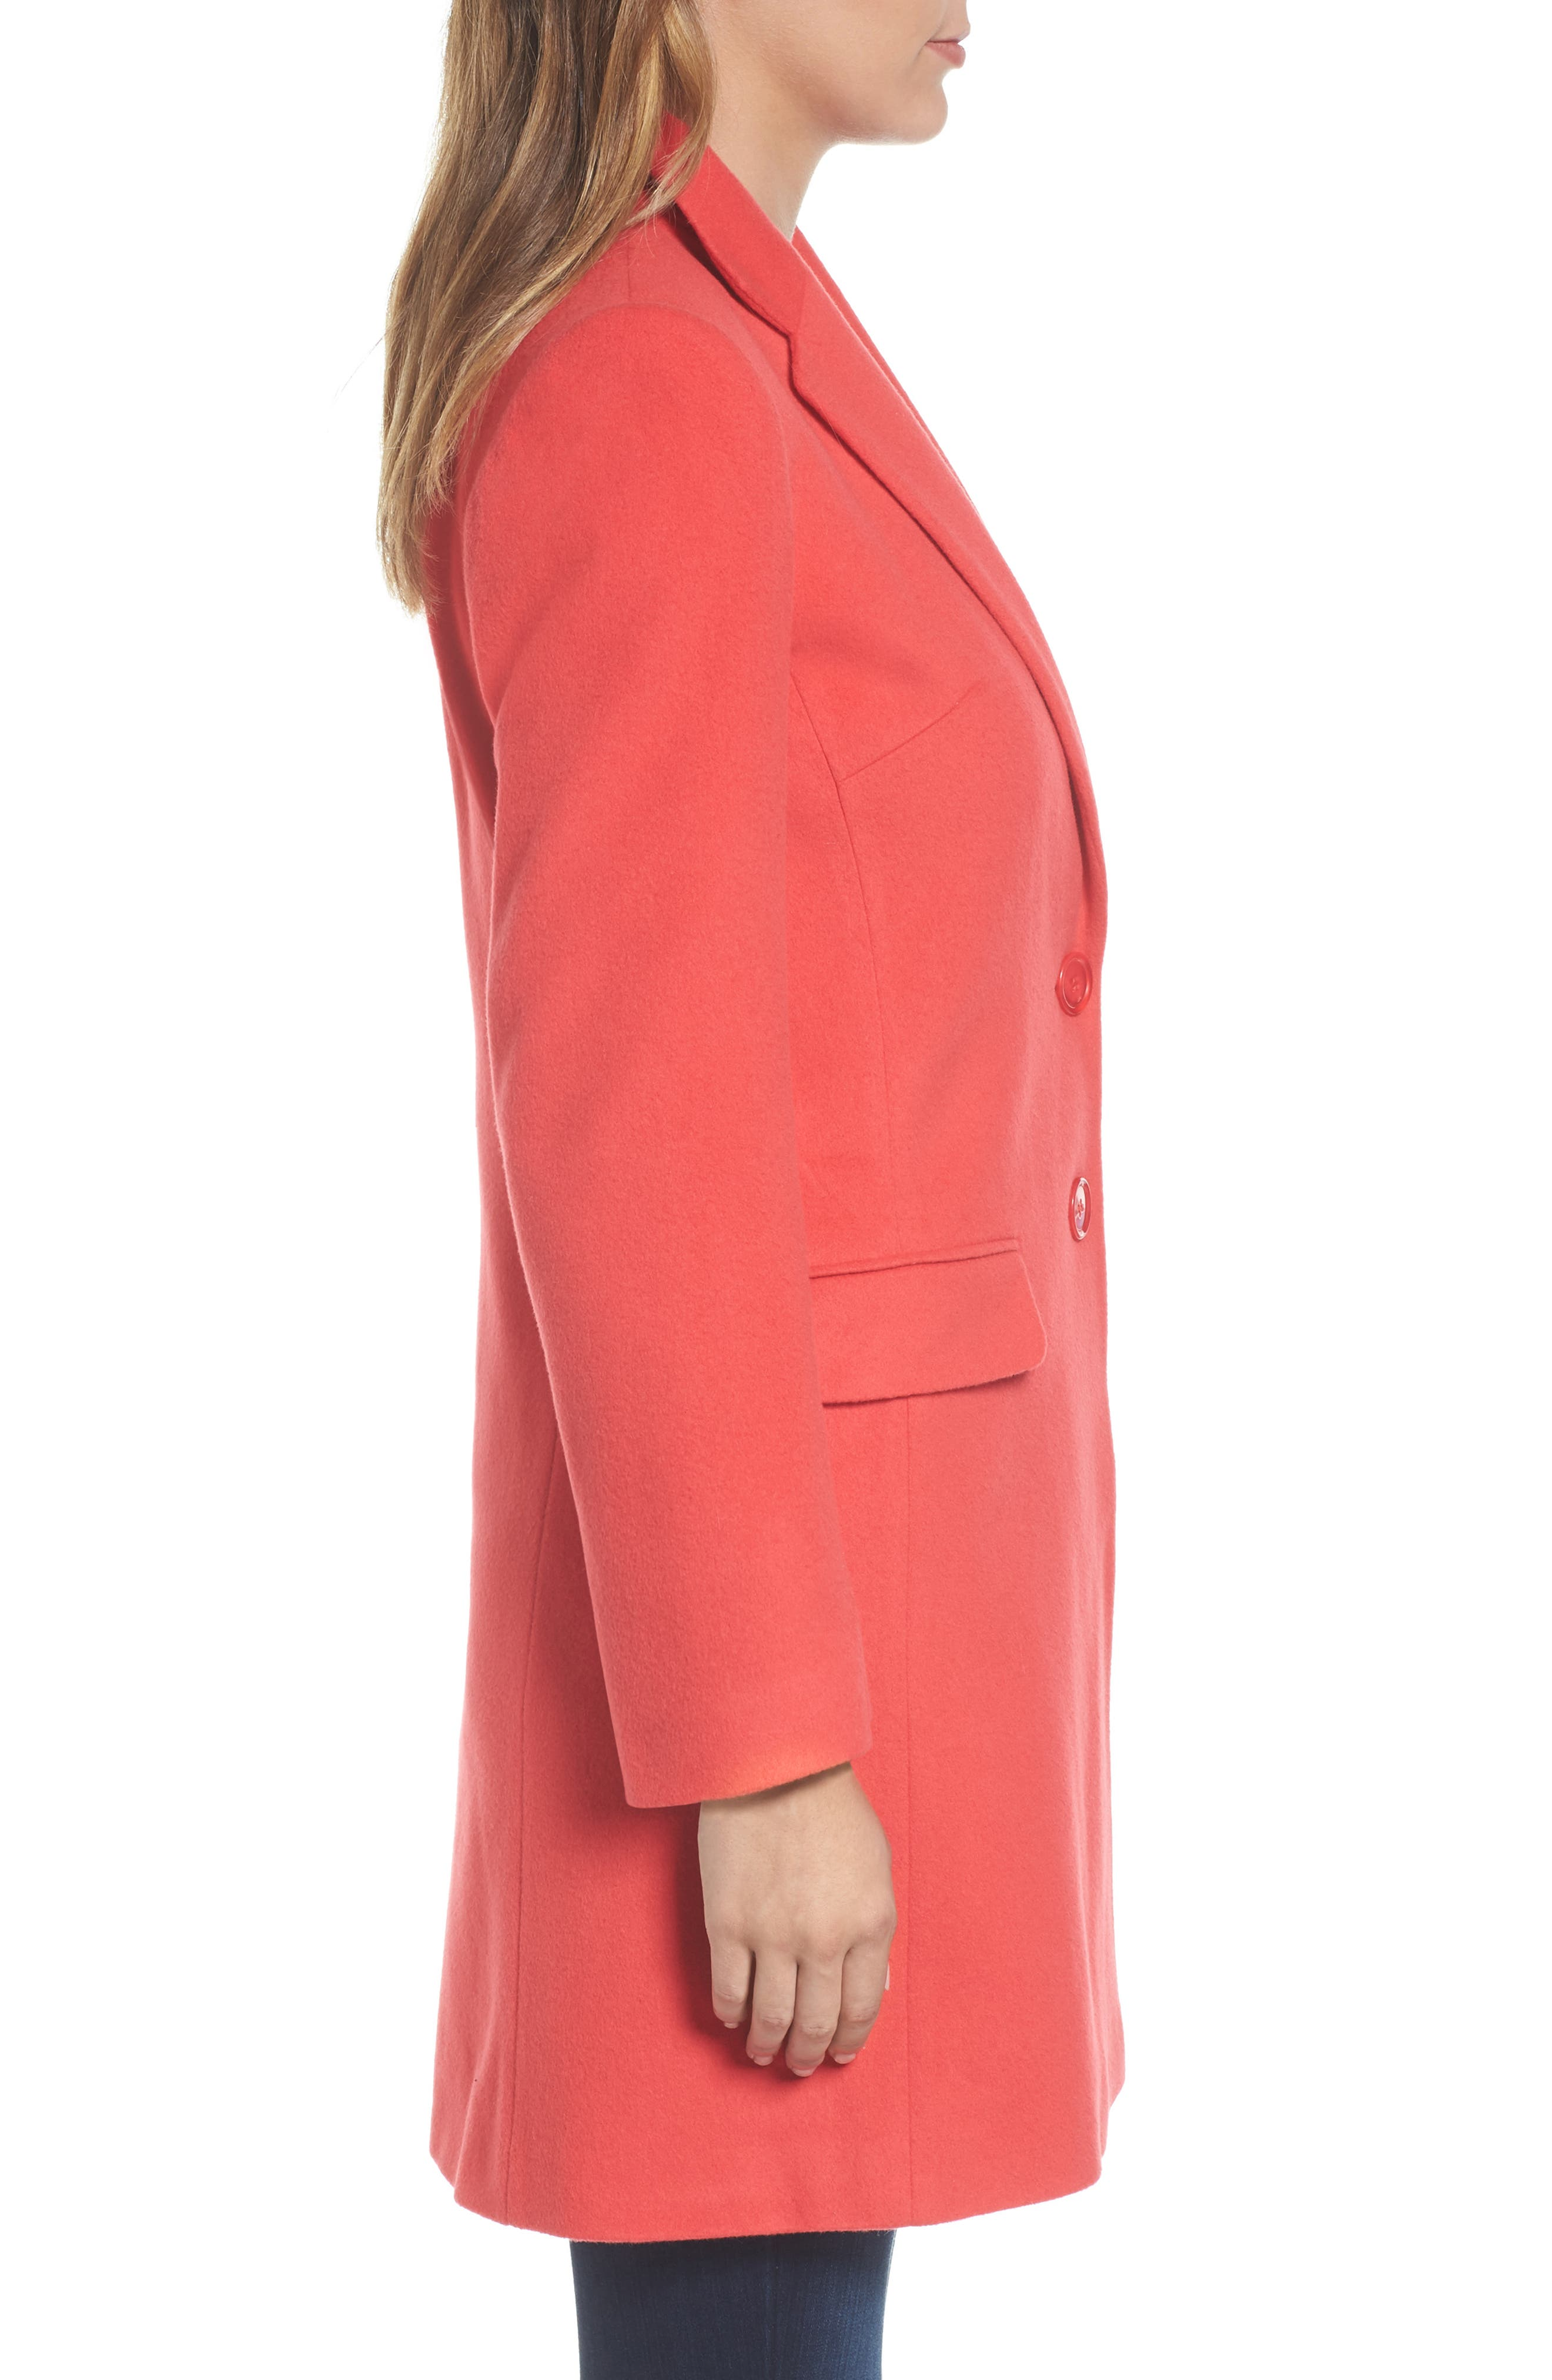 Charles Gray London Wool Blend College Coat,                             Alternate thumbnail 4, color,                             Coral